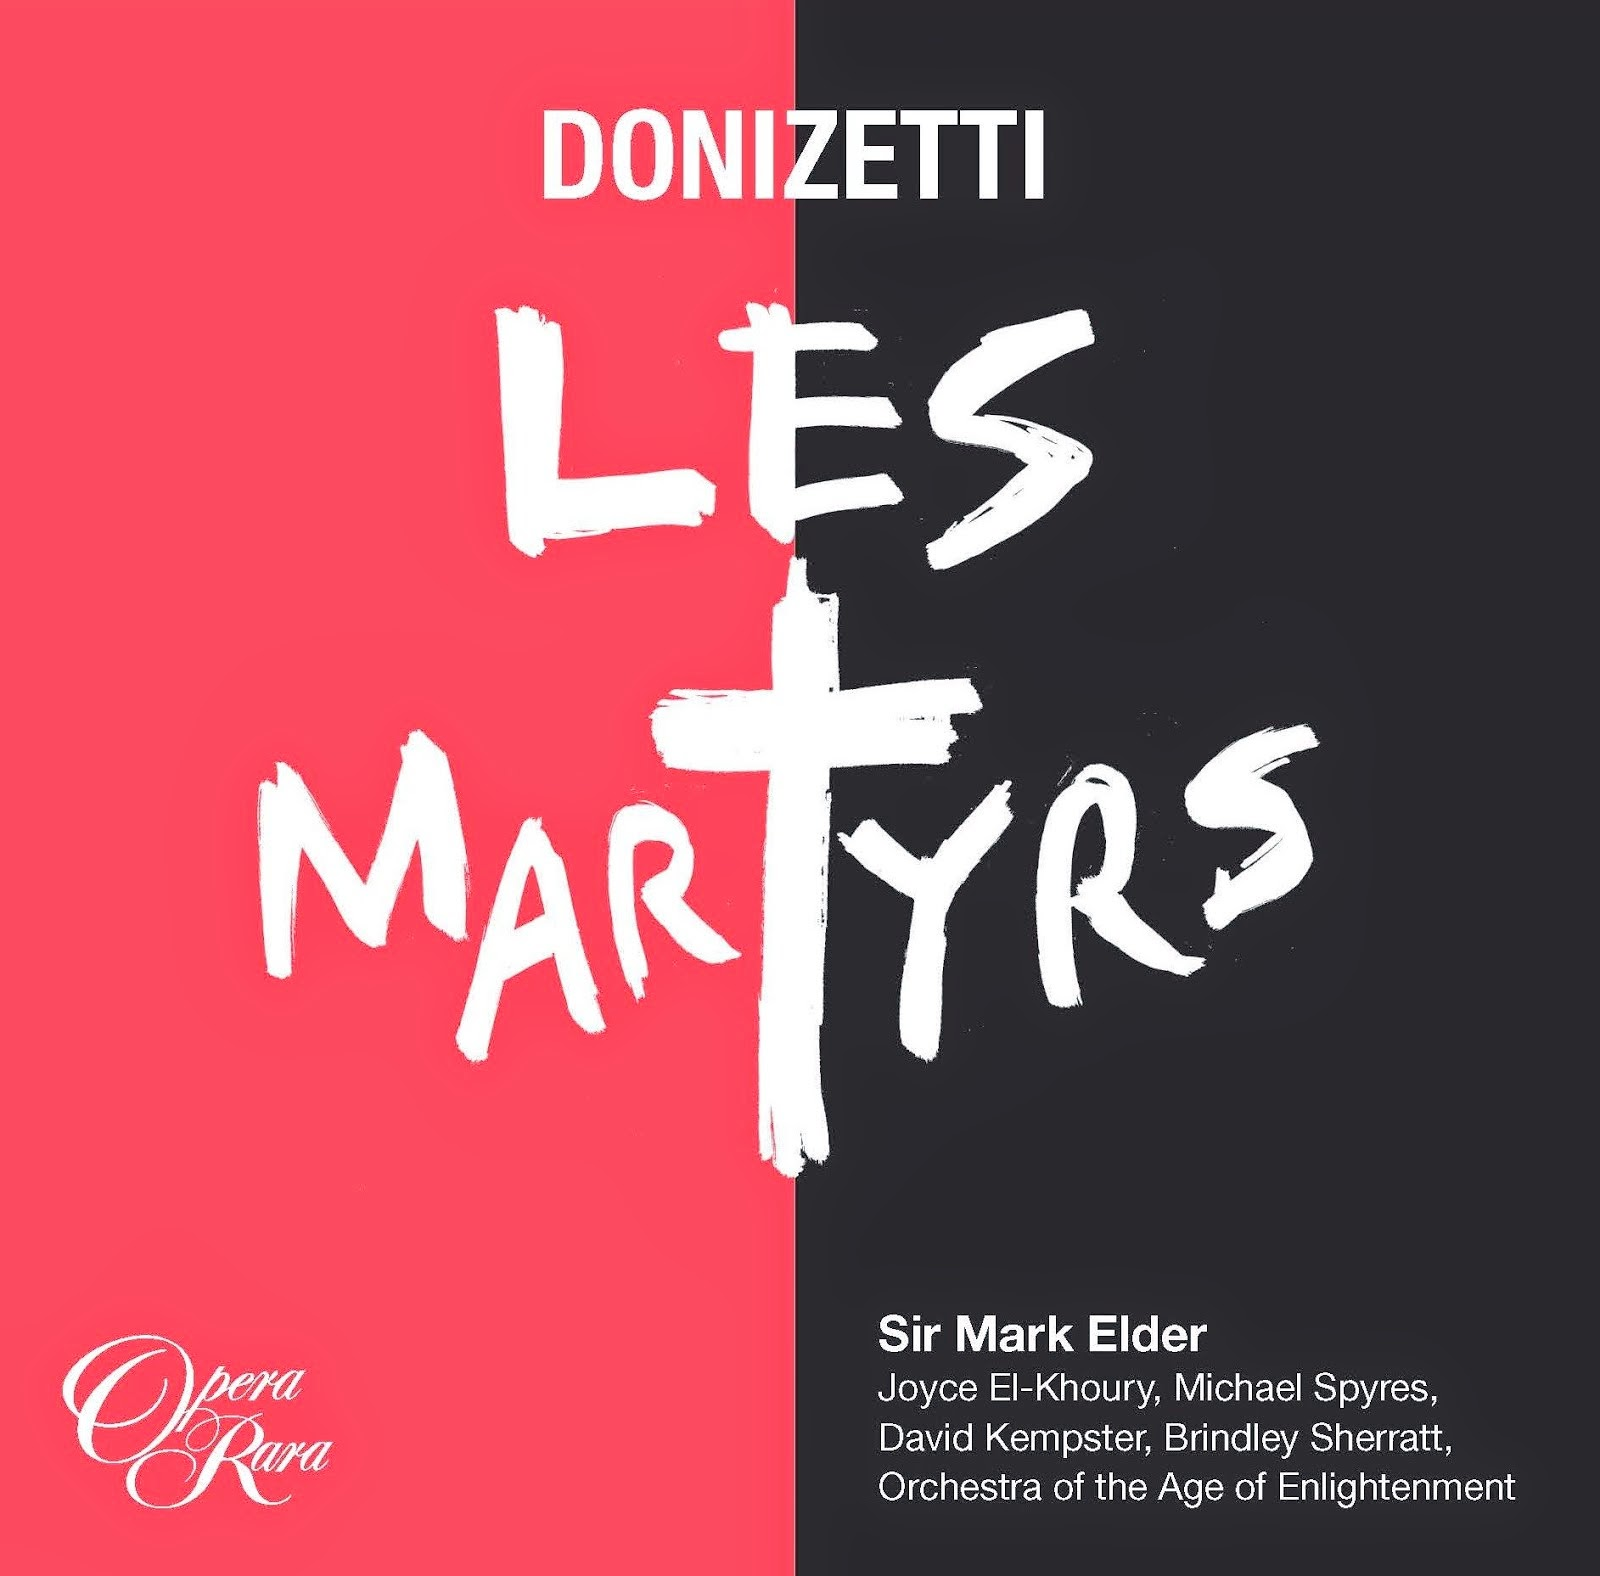 Donizetti en français: Opera Rara's studio recording of LES MARTYRS available now for pre-order!